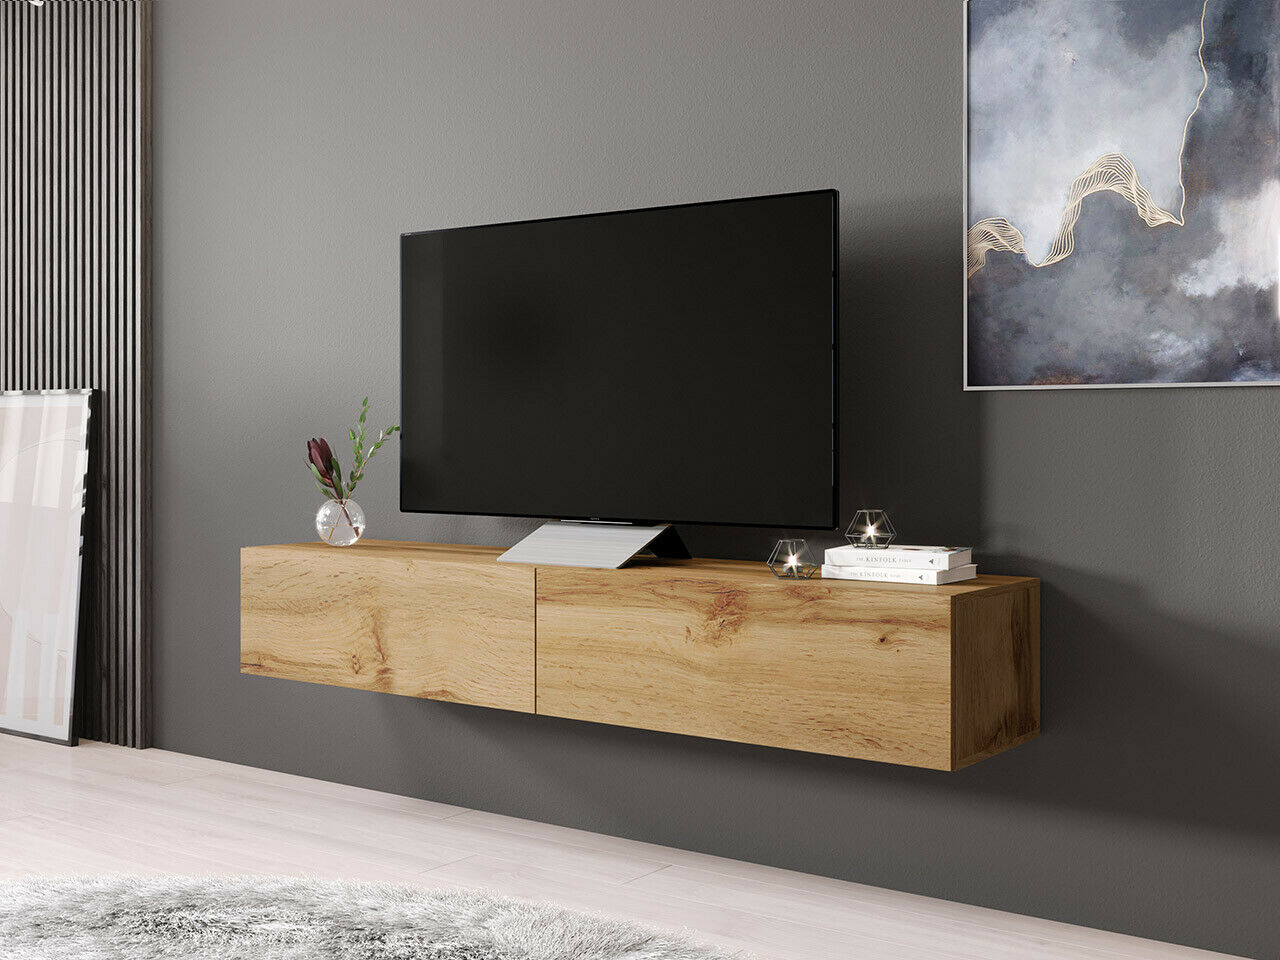 fernsehschrank tv board rack lowboard h ngeschrank h ngend hochglanz matt eur 115 00 picclick de. Black Bedroom Furniture Sets. Home Design Ideas